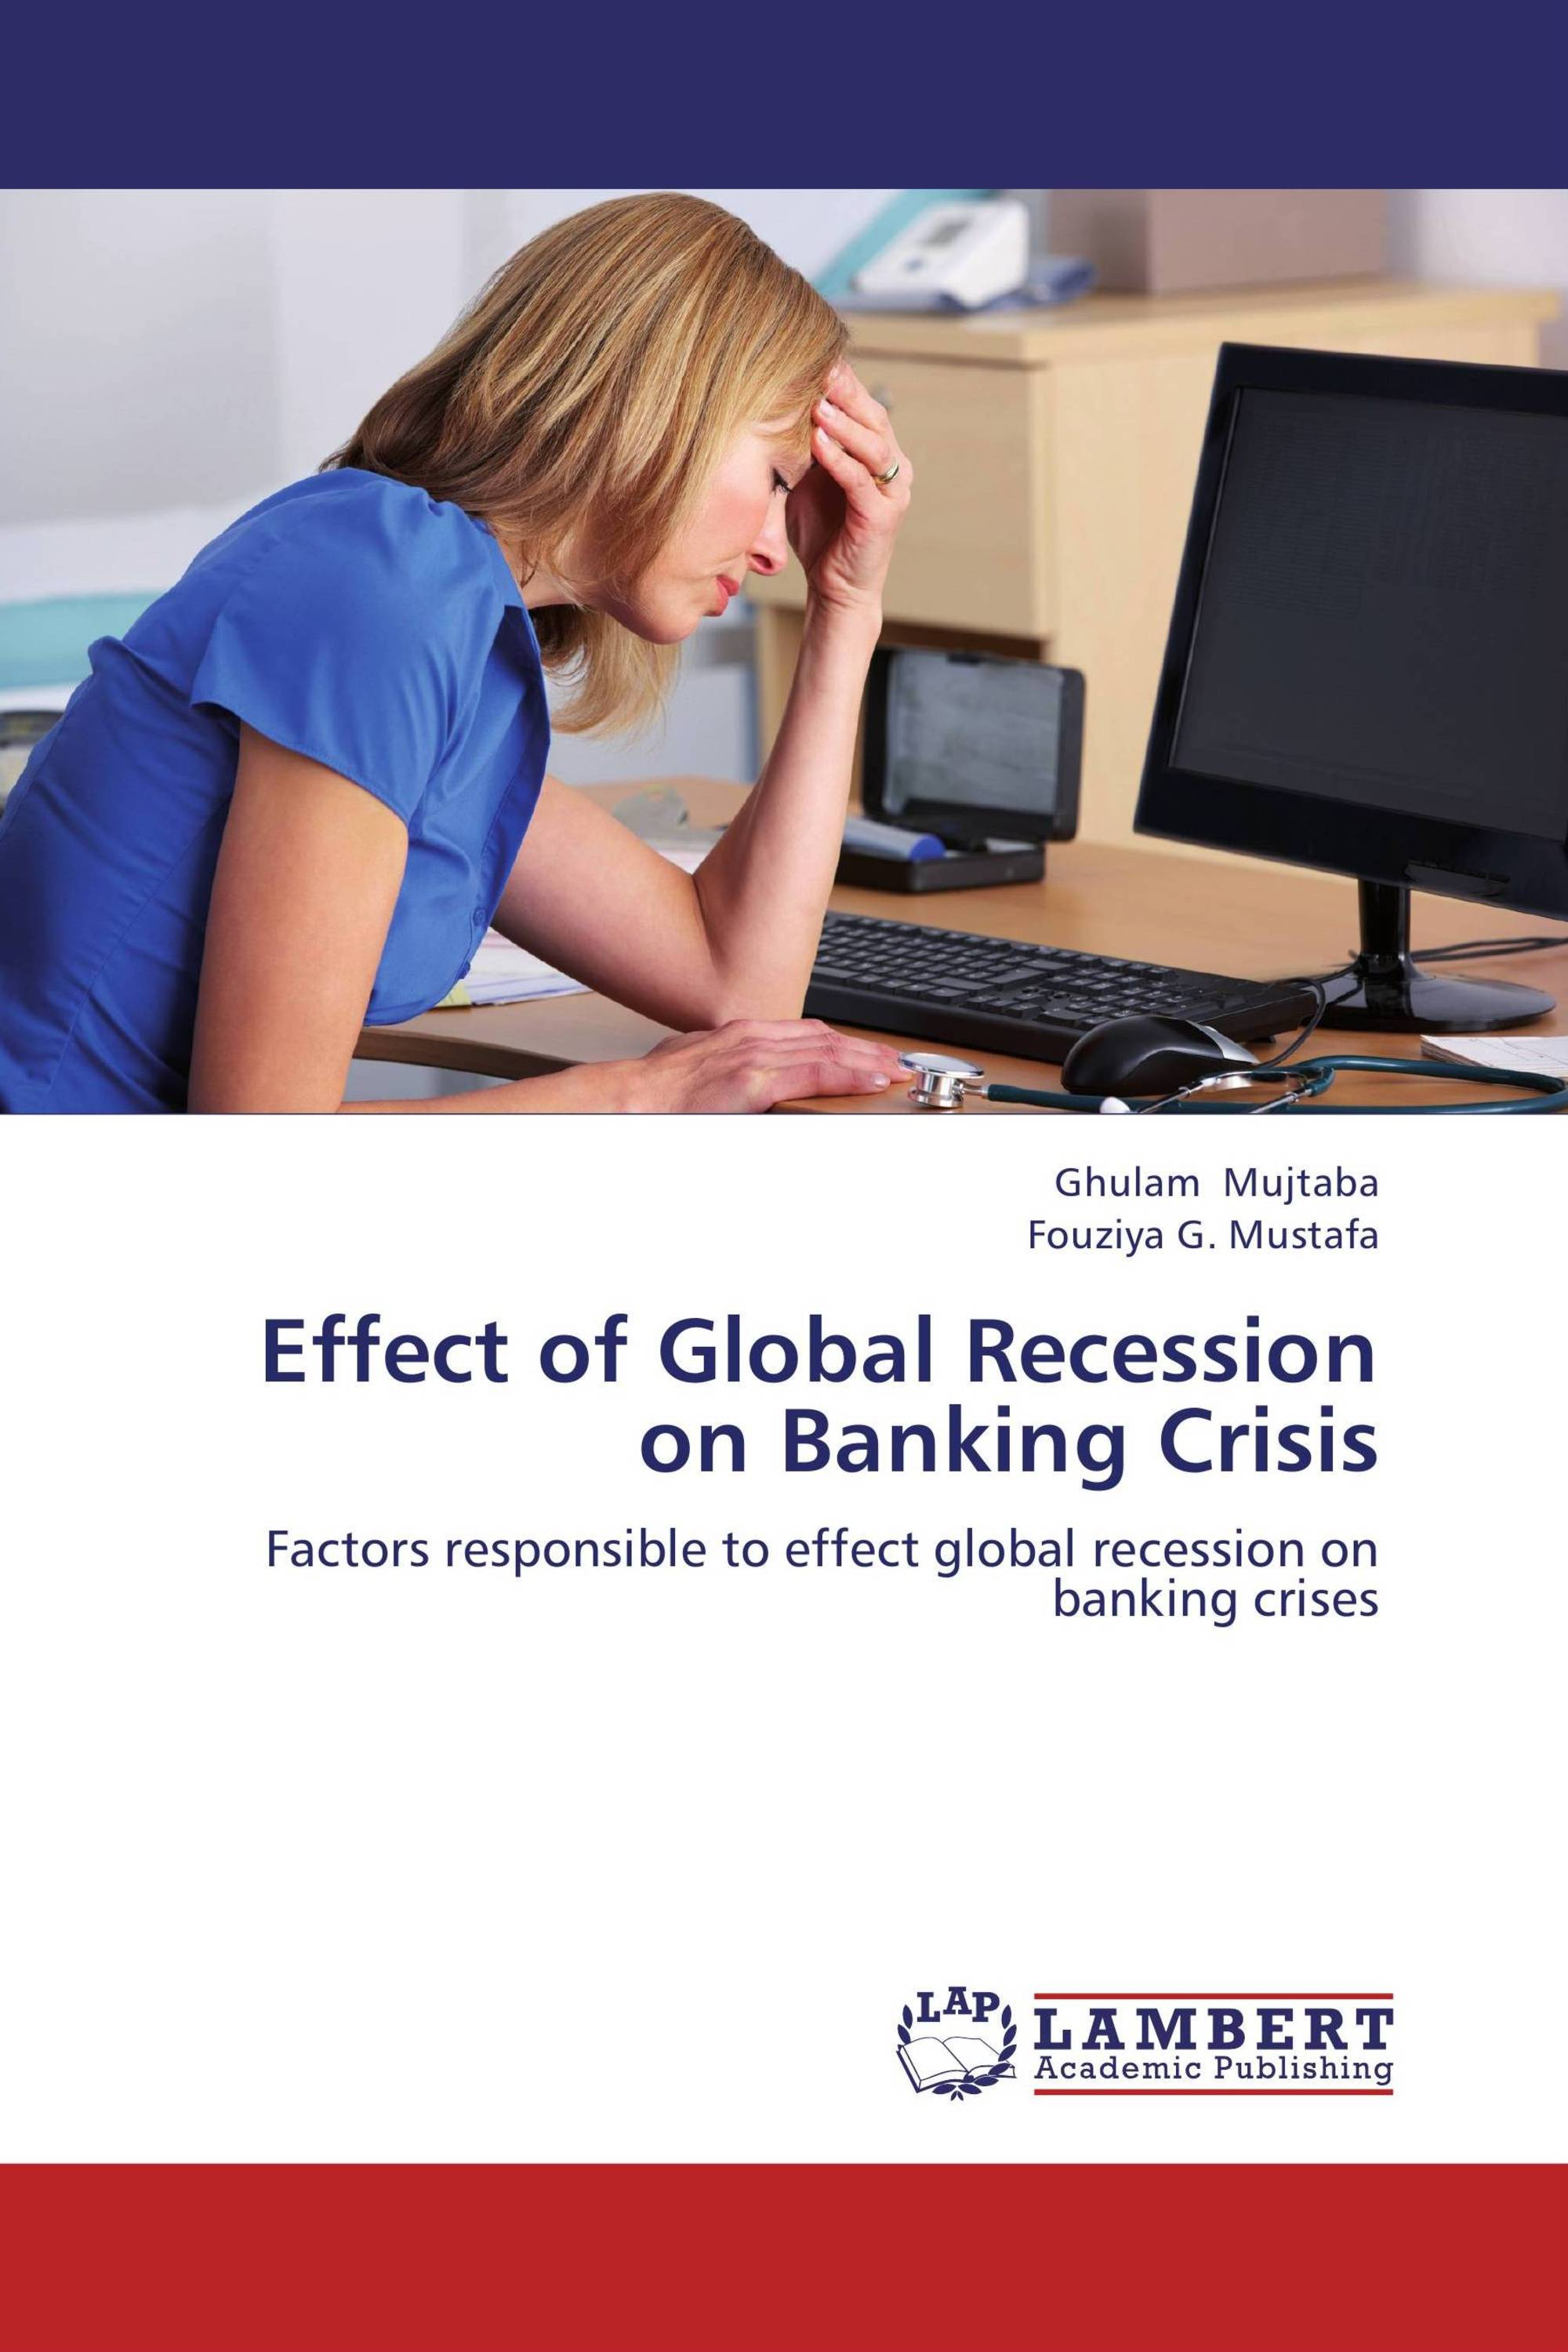 Effect of Global Recession on Banking Crisis